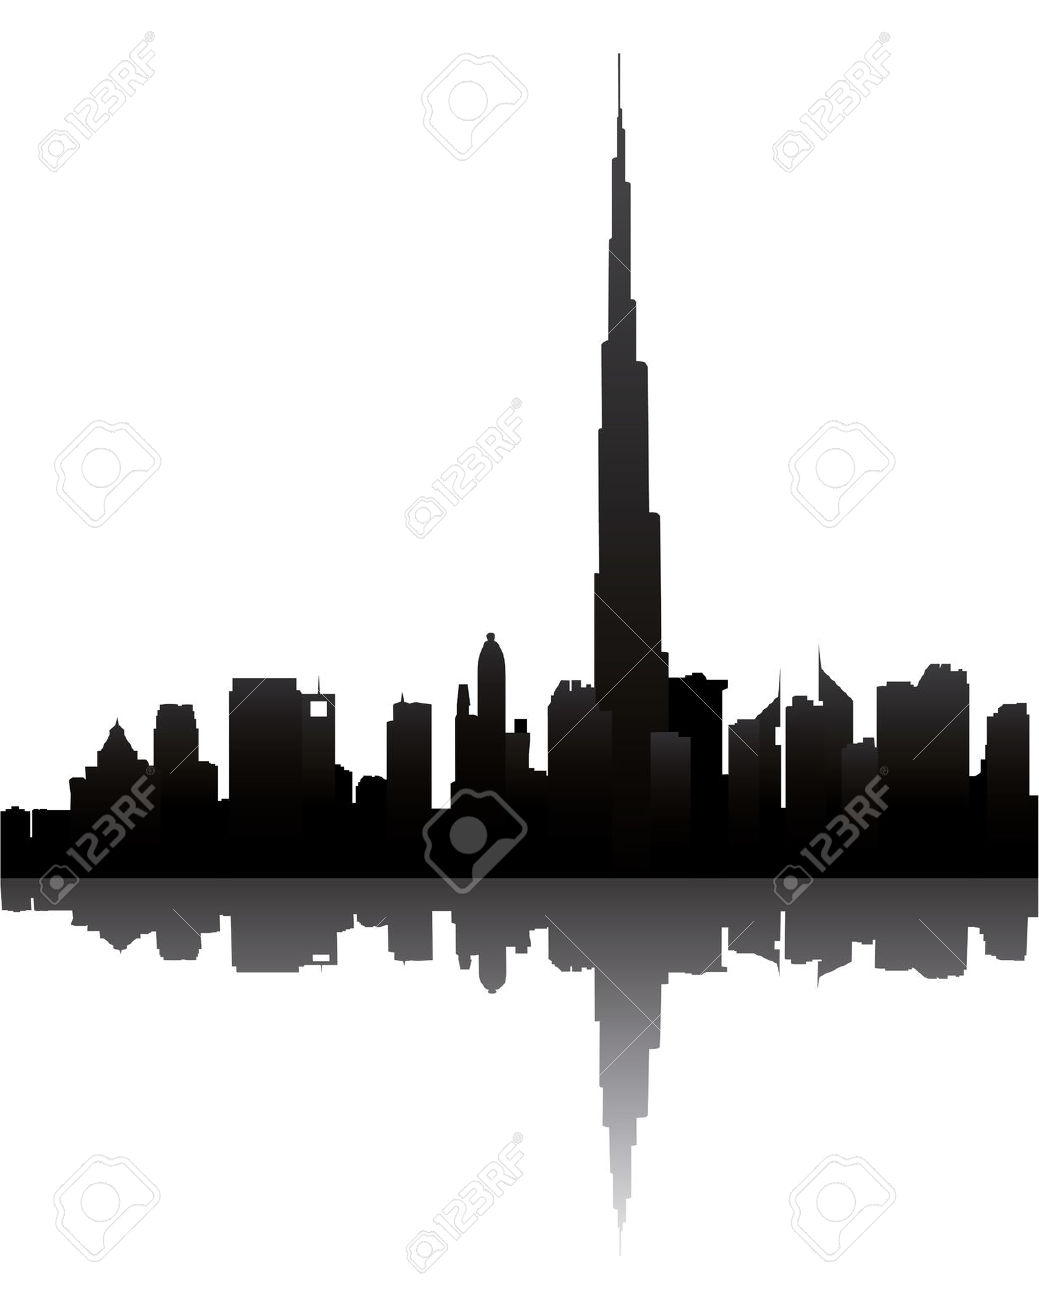 Dubai Skyline With Burj Dubai Royalty Free Cliparts, Vectors, And.